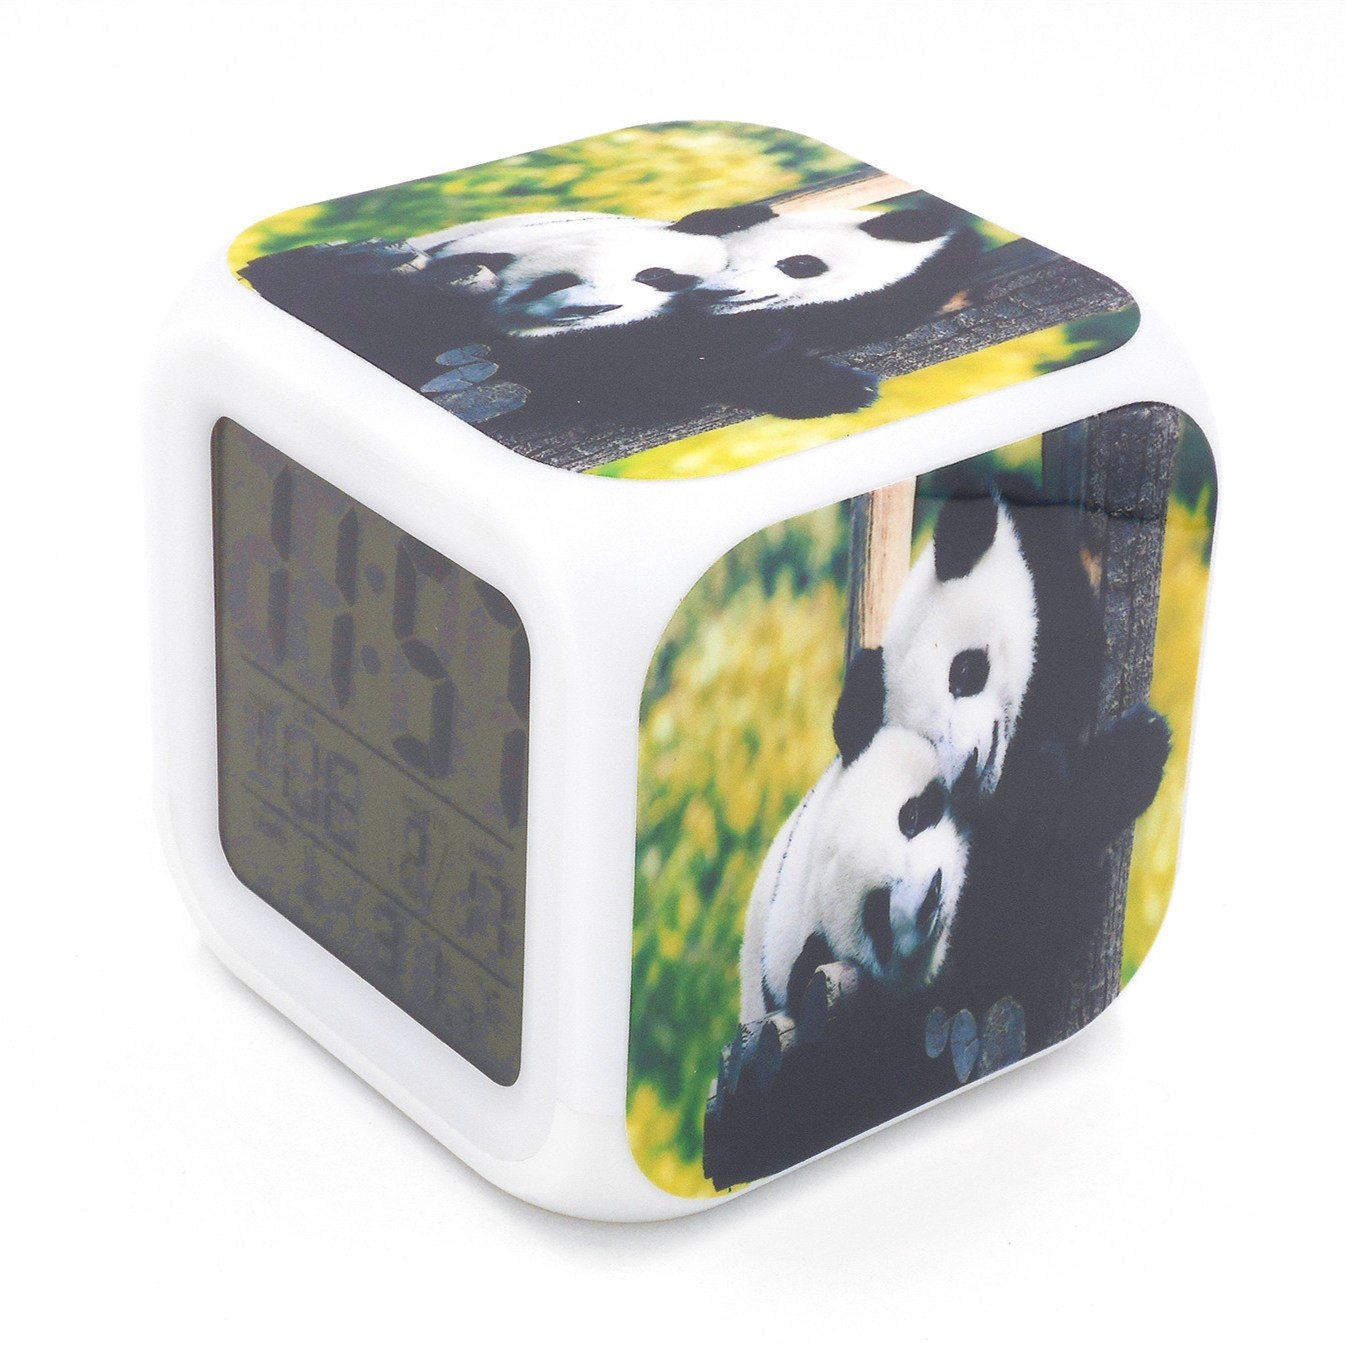 Boyan New Cute Panda Animal Led Alarm Clock Desk Clock Multipurpose Calendar Snooze Glowing Led Digital Alarm Clock for Unisex Adults Kids Toy Gift by Boyan (Image #3)